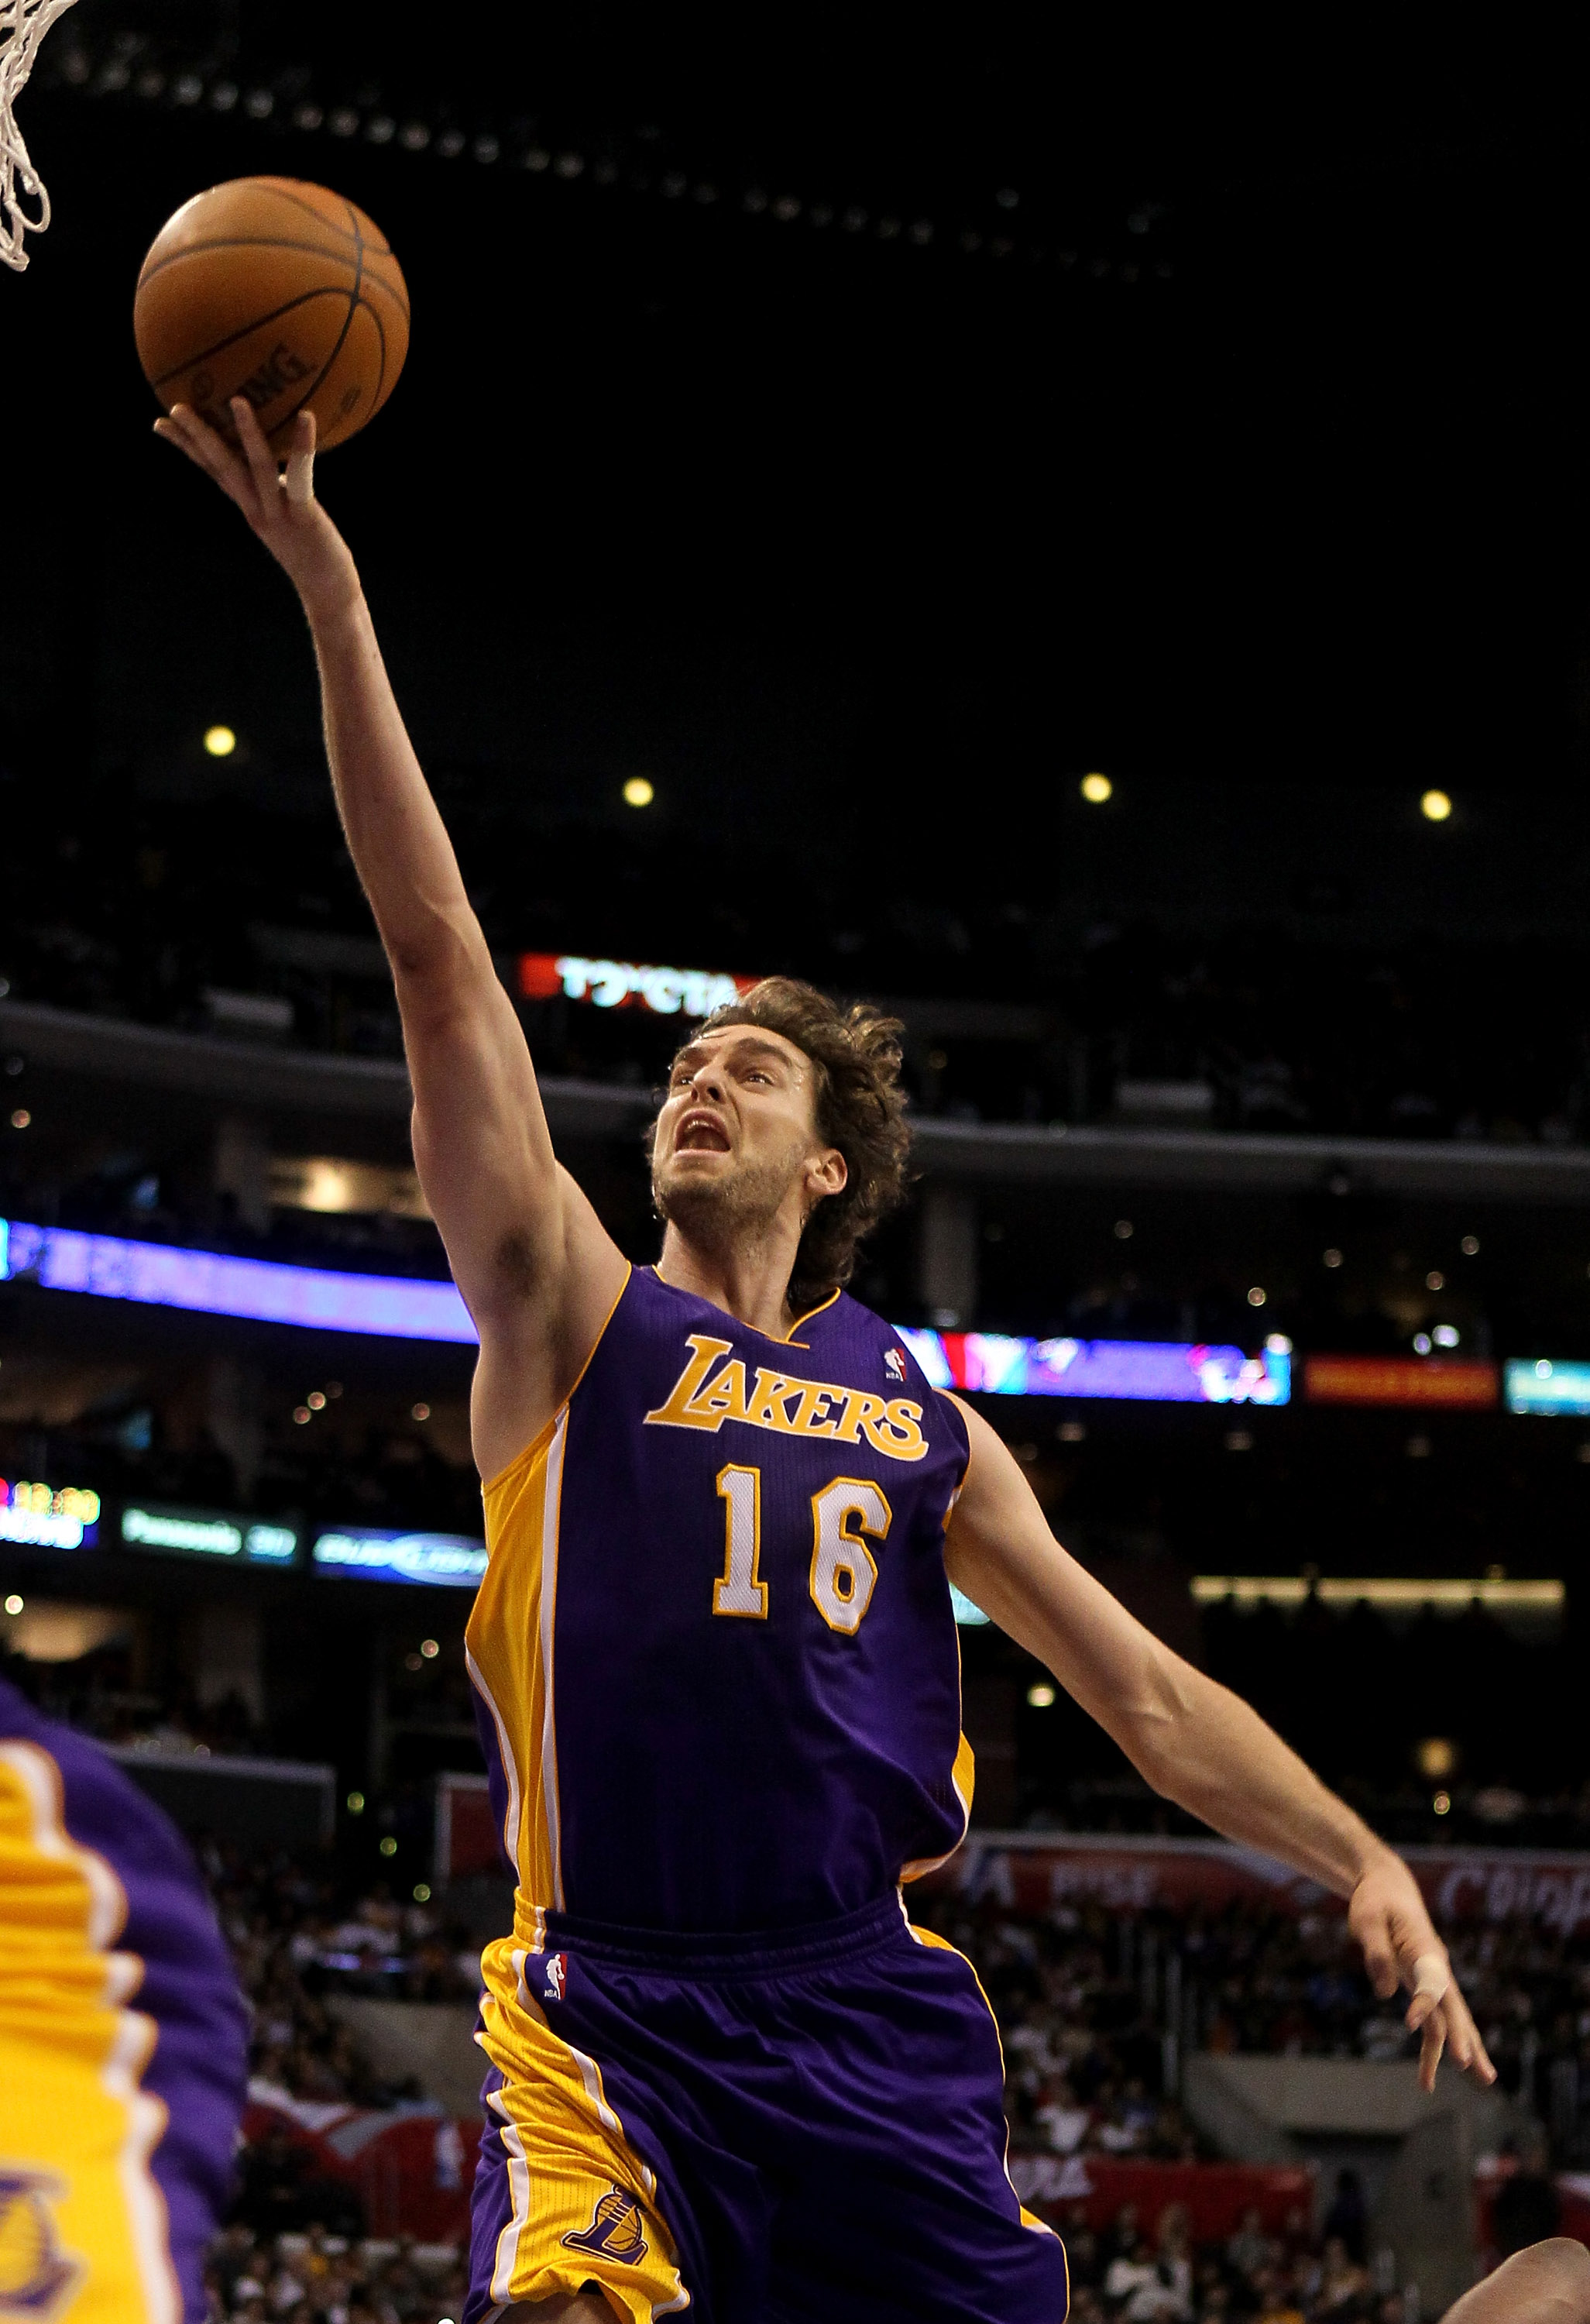 LOS ANGELES, CA - DECEMBER 08:  Pau Gasol #16 of the Los Angeles Lakers shoots against the Los Angeles Clippers at Staples Center on December 8, 2010 in Los Angeles, California.  NOTE TO USER: User expressly acknowledges and agrees that, by downloading an